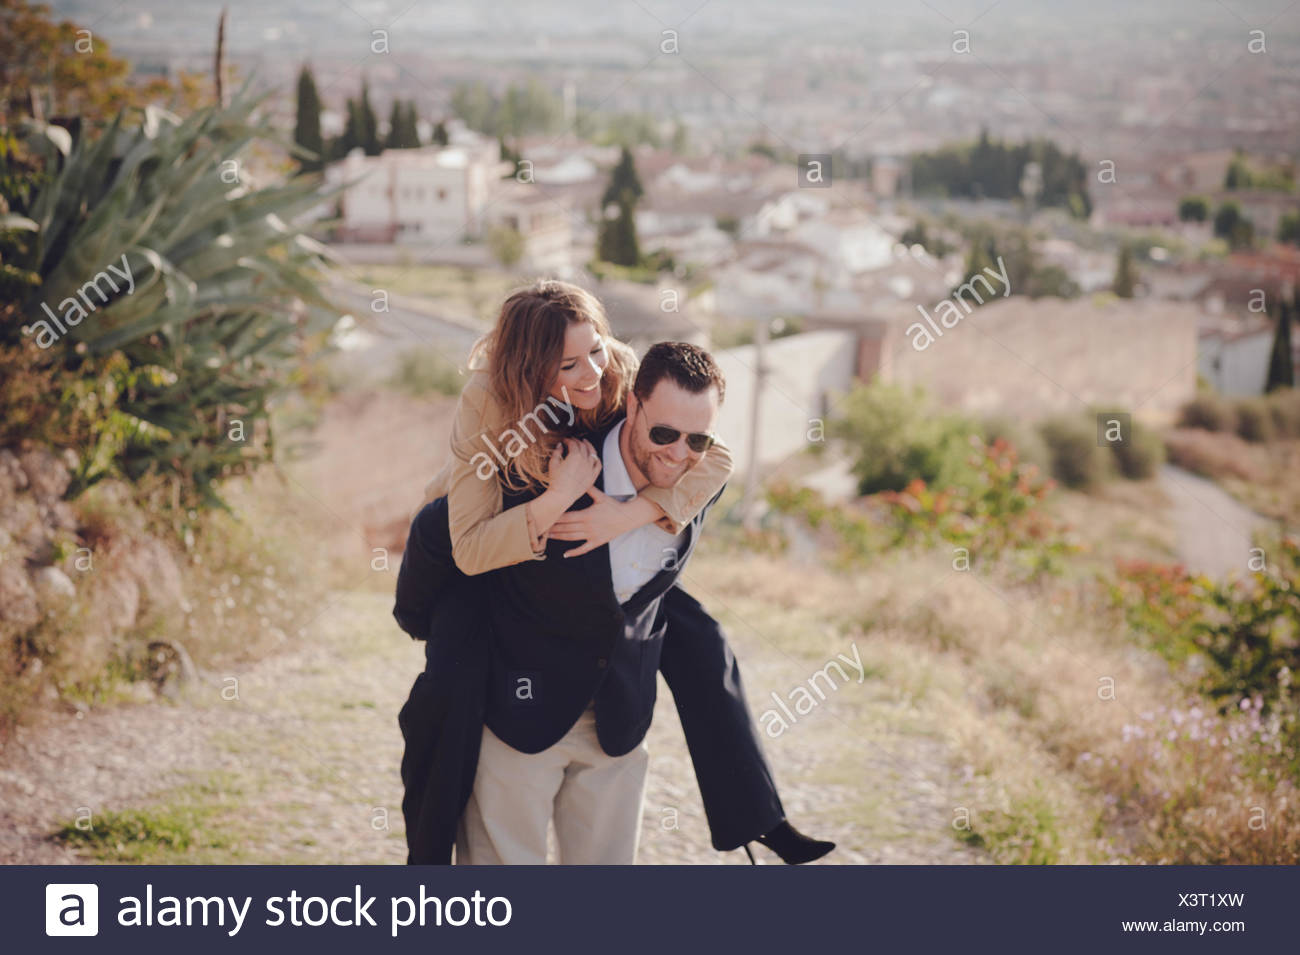 Man And Woman Doing Piggyback Ride - Stock Image